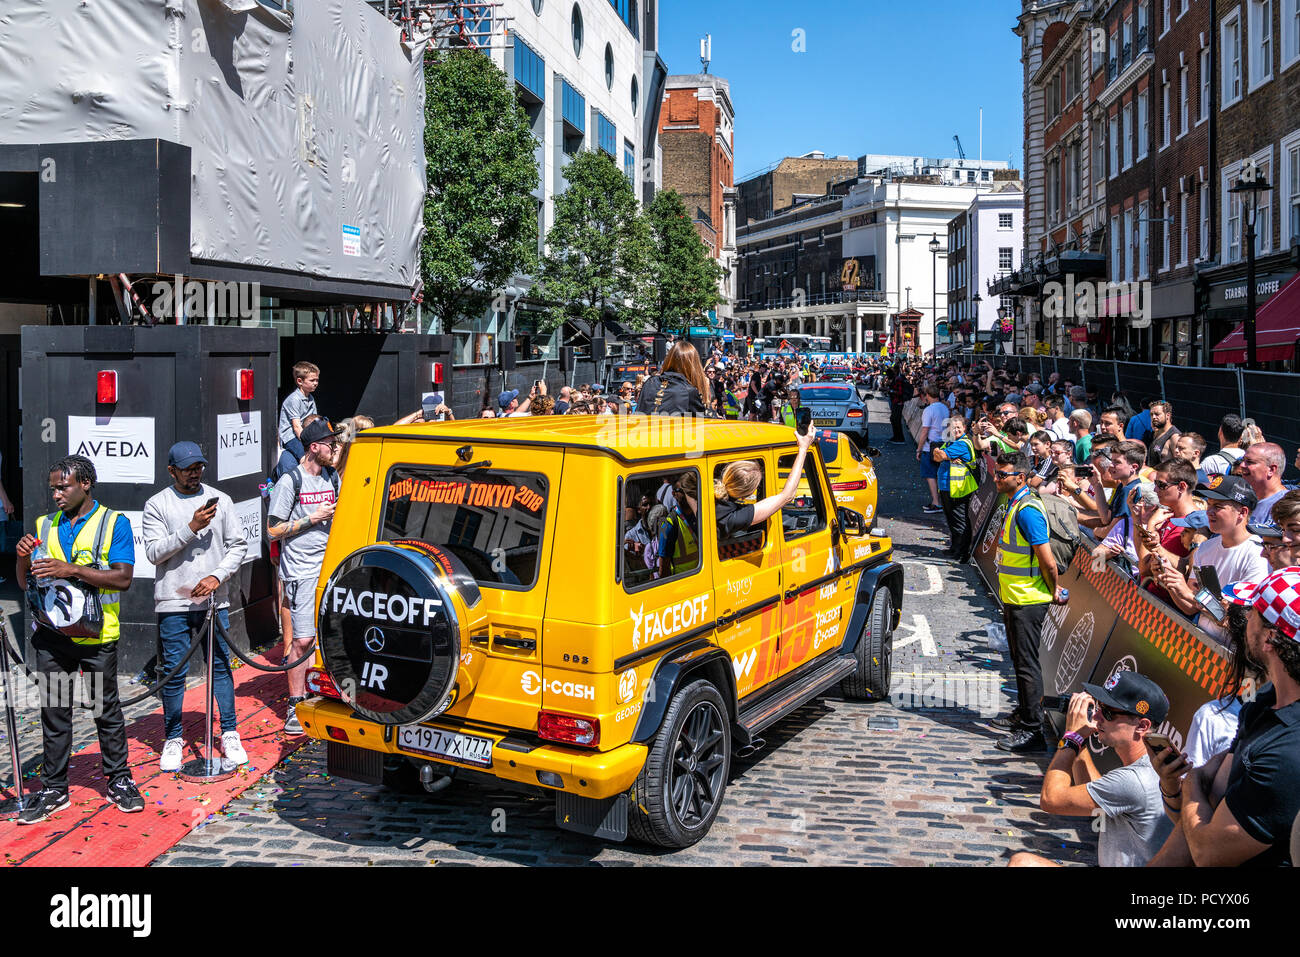 5 August 2018 - London, England. Russian team in yellow Mercedes AMG G63, 4x4 SUV before the Gumball Rally 3000 started in Covent Garden, London. - Stock Image